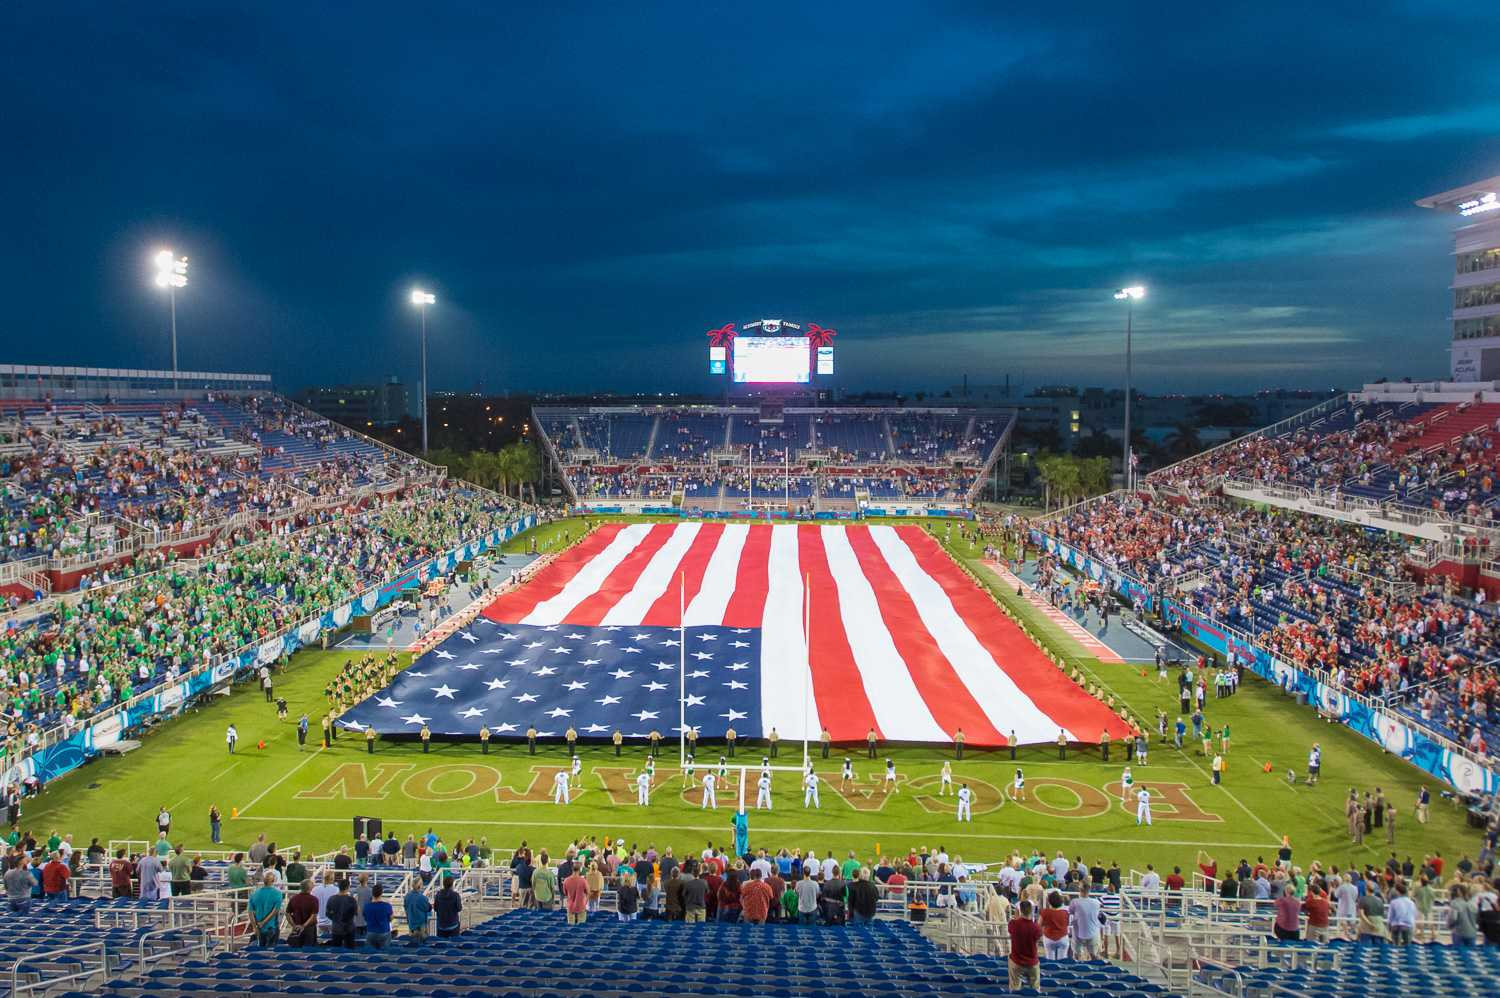 A 100-yard long American flag is held out during the singing of the National Anthem prior to the first-ever kick off of the Boca Raton Bowl.